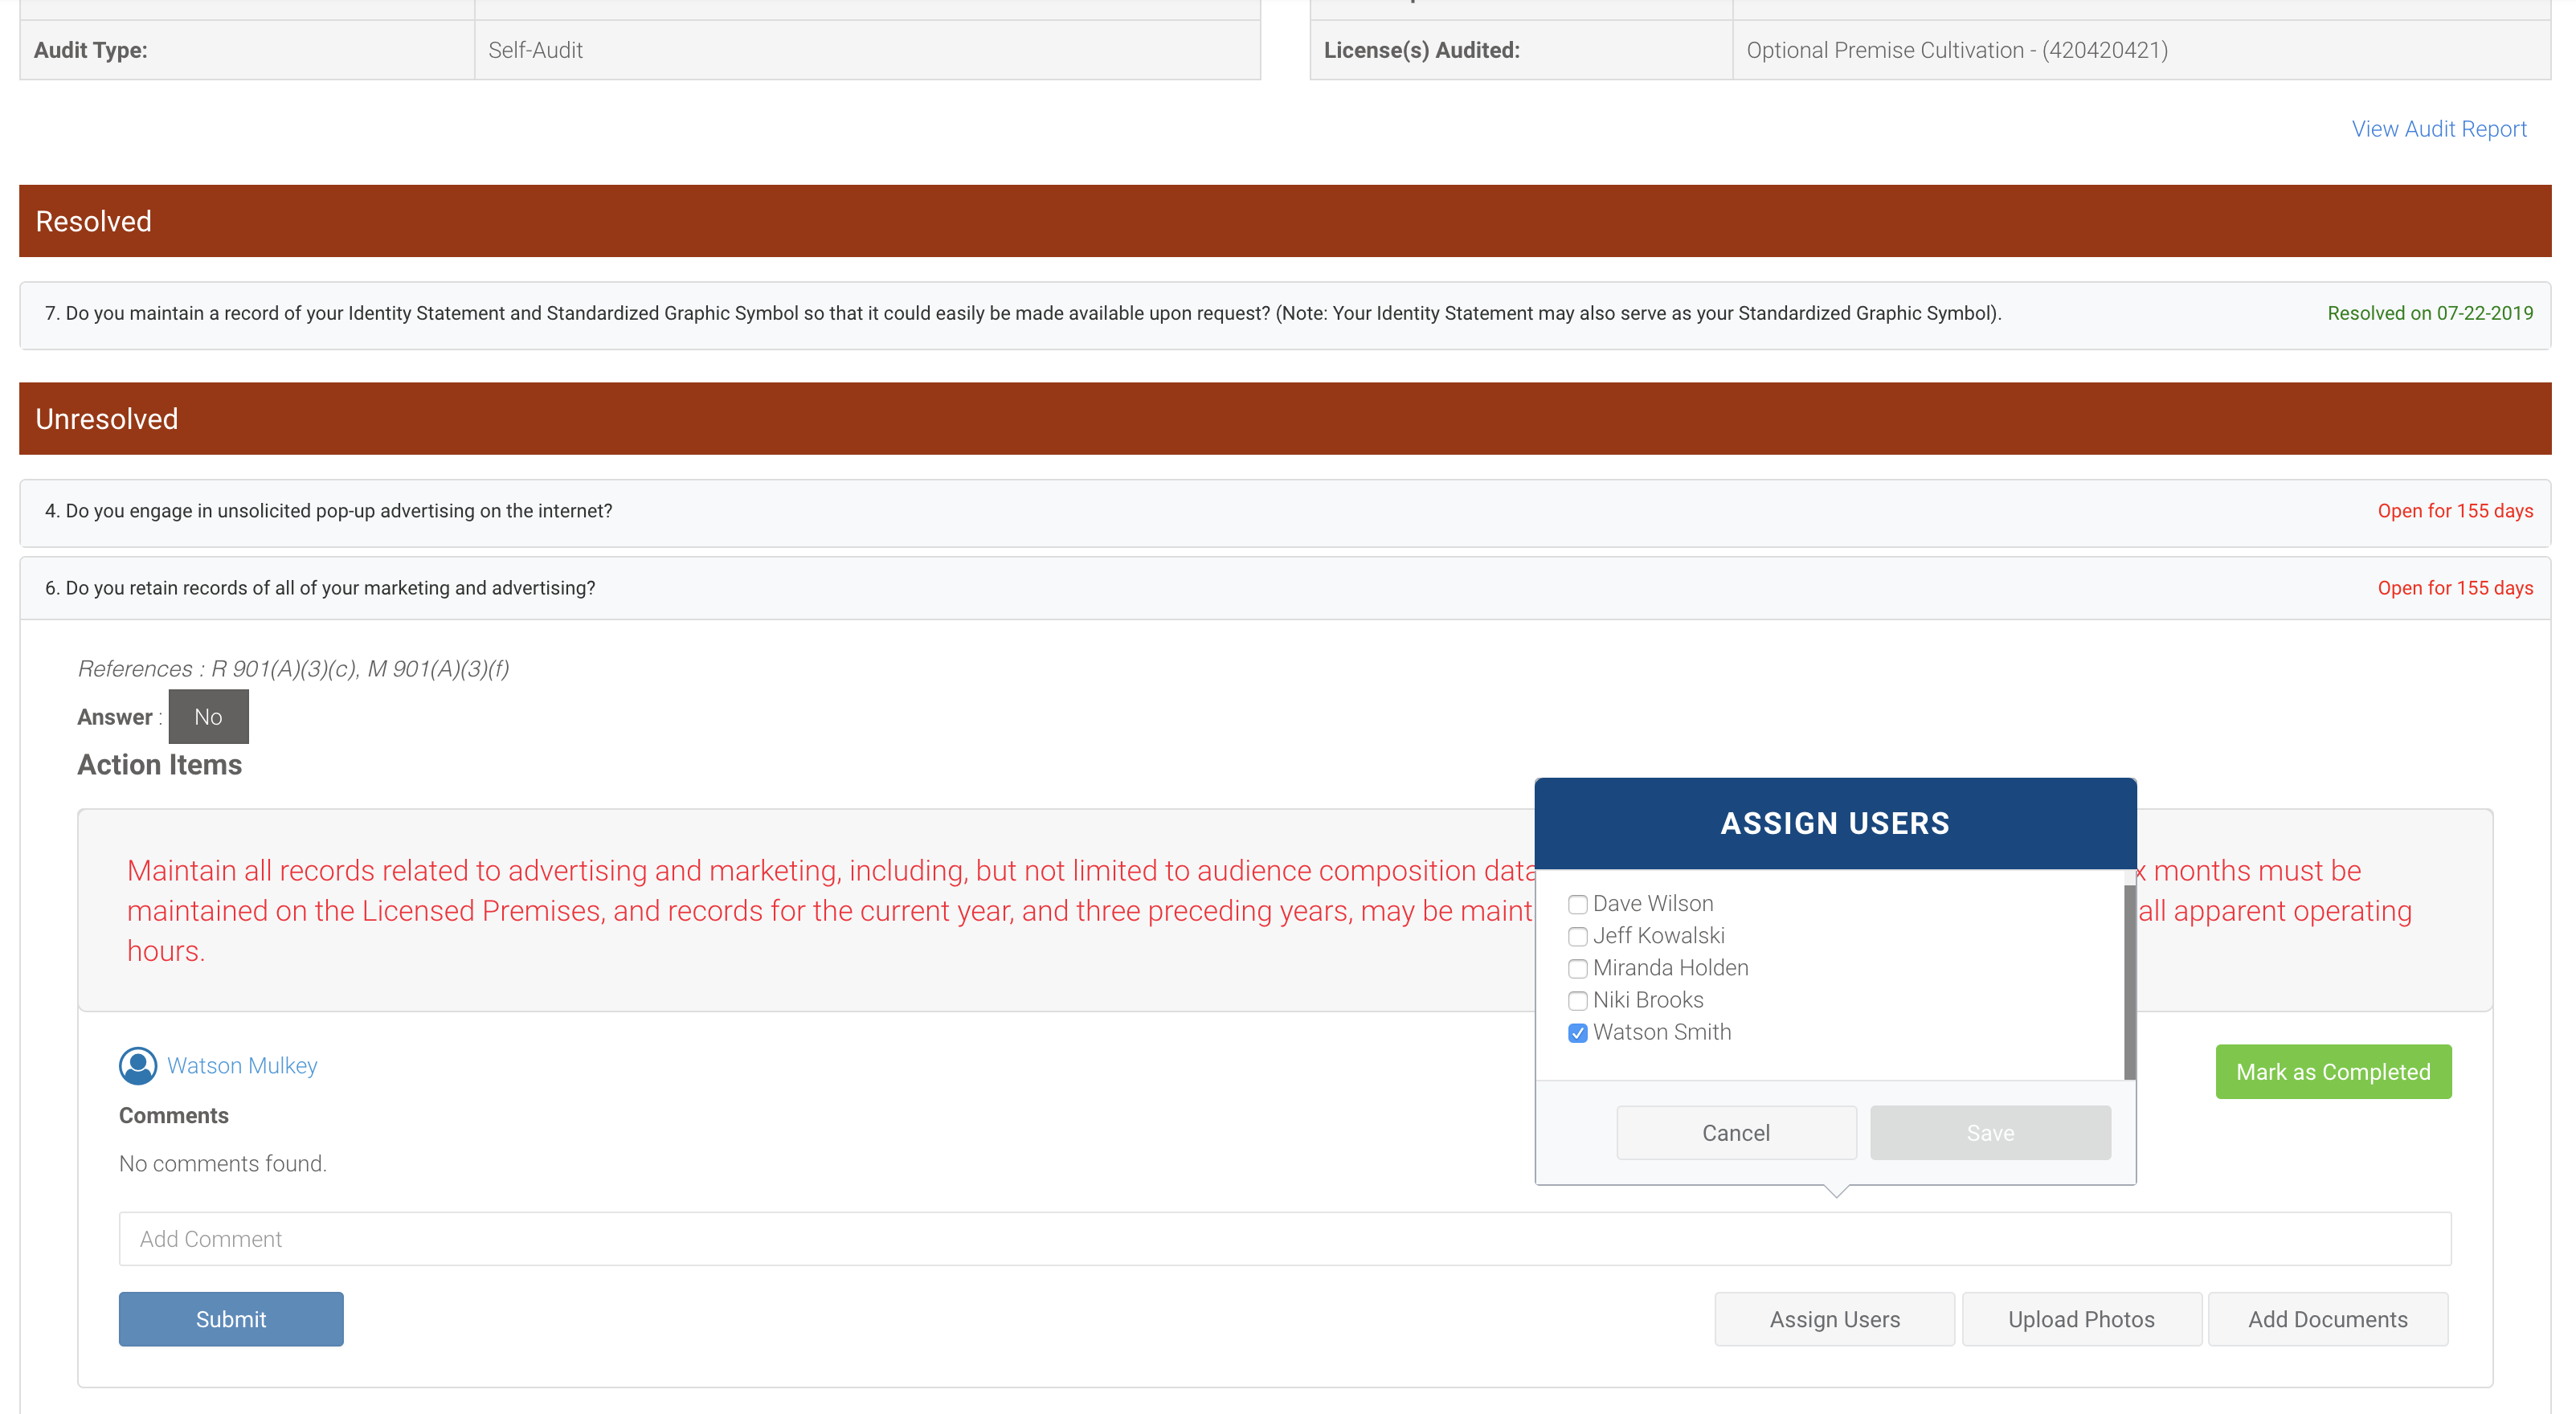 zendesk_remediation_report_assign_action_items.png